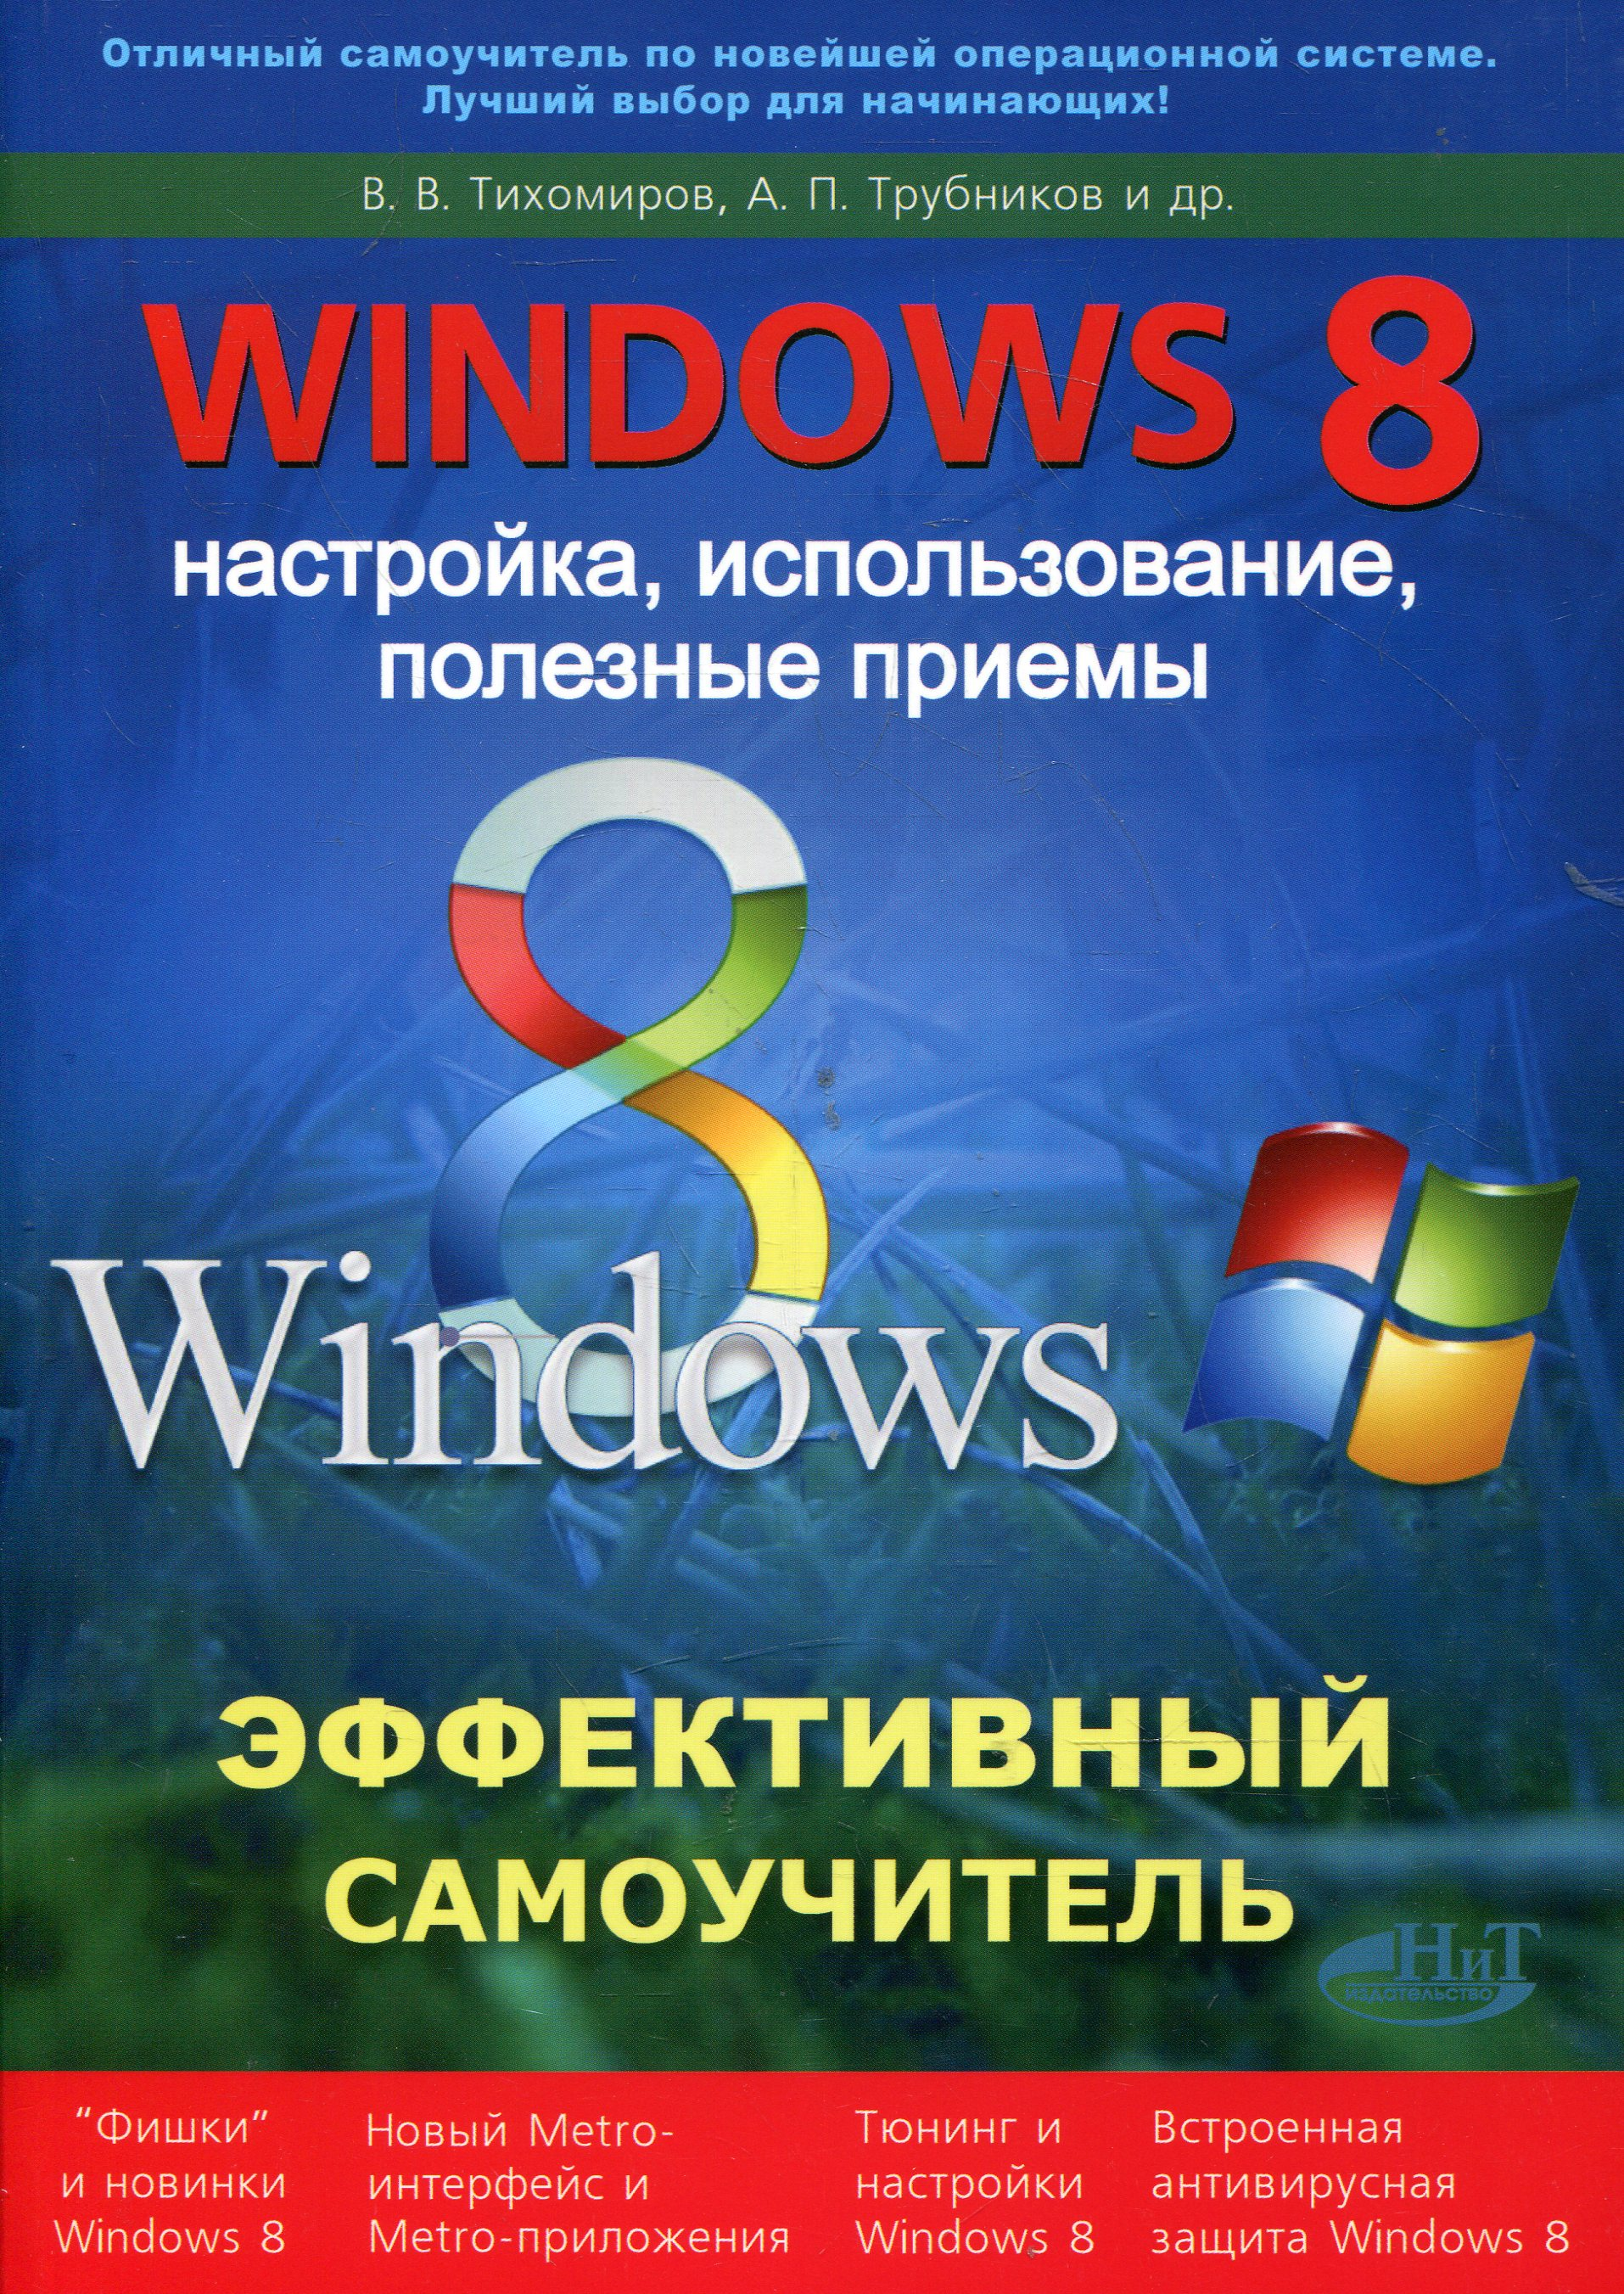 Windows 8. Эффективный самоучитель. Настройка, использование, полезные приемы